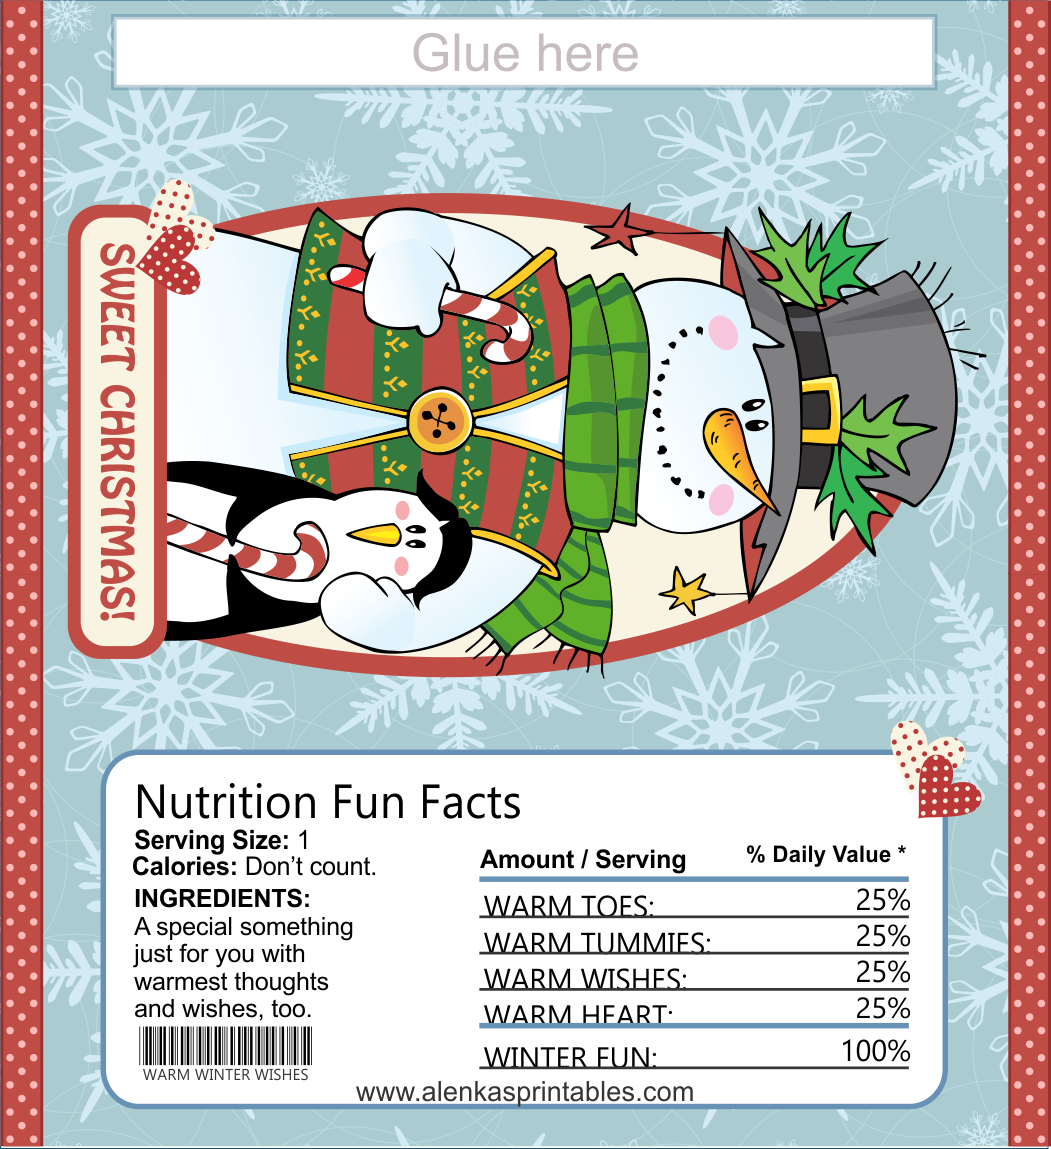 image regarding Free Printable Christmas Candy Bar Wrappers named Sweet bar wrapper Printable Xmas Printables 7 Sweet